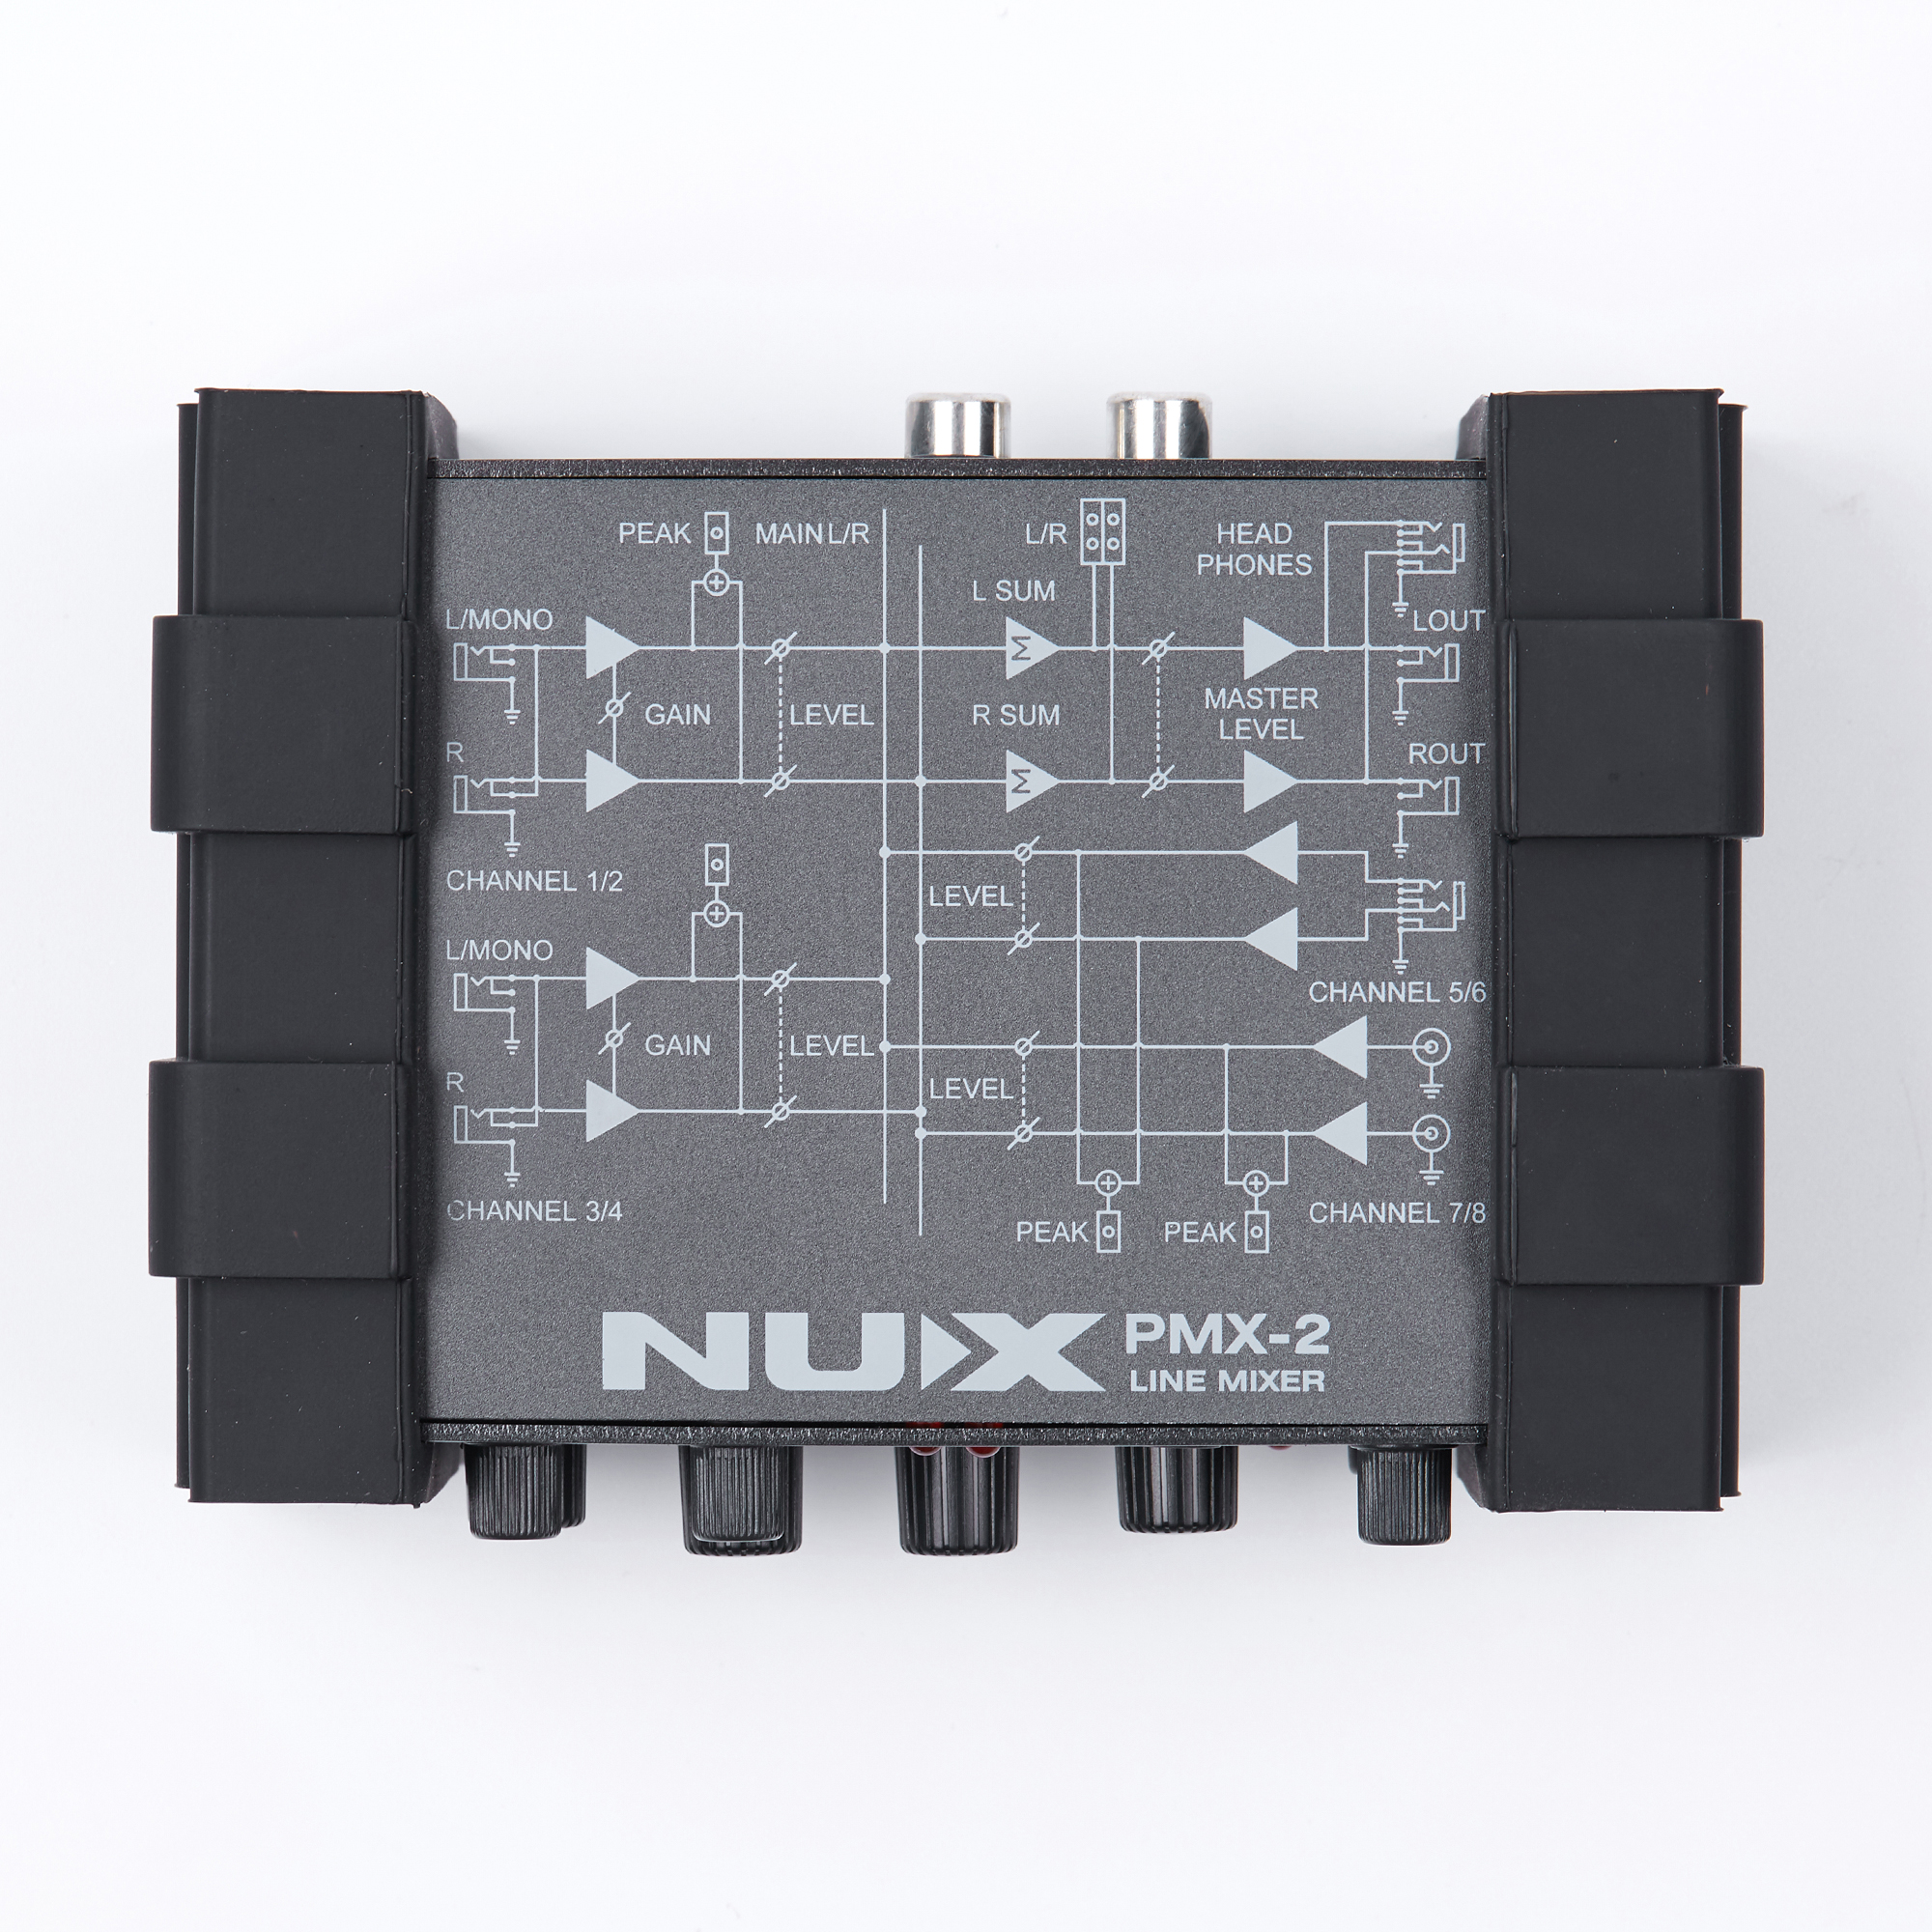 Gain Control 8 Inputs and 2 Outputs NUX PMX-2 Multi-Channel Mini Mixer 30 Musical Instruments Accessories for Guitar Bass Player аксессуар bbb bmp 29 airshock